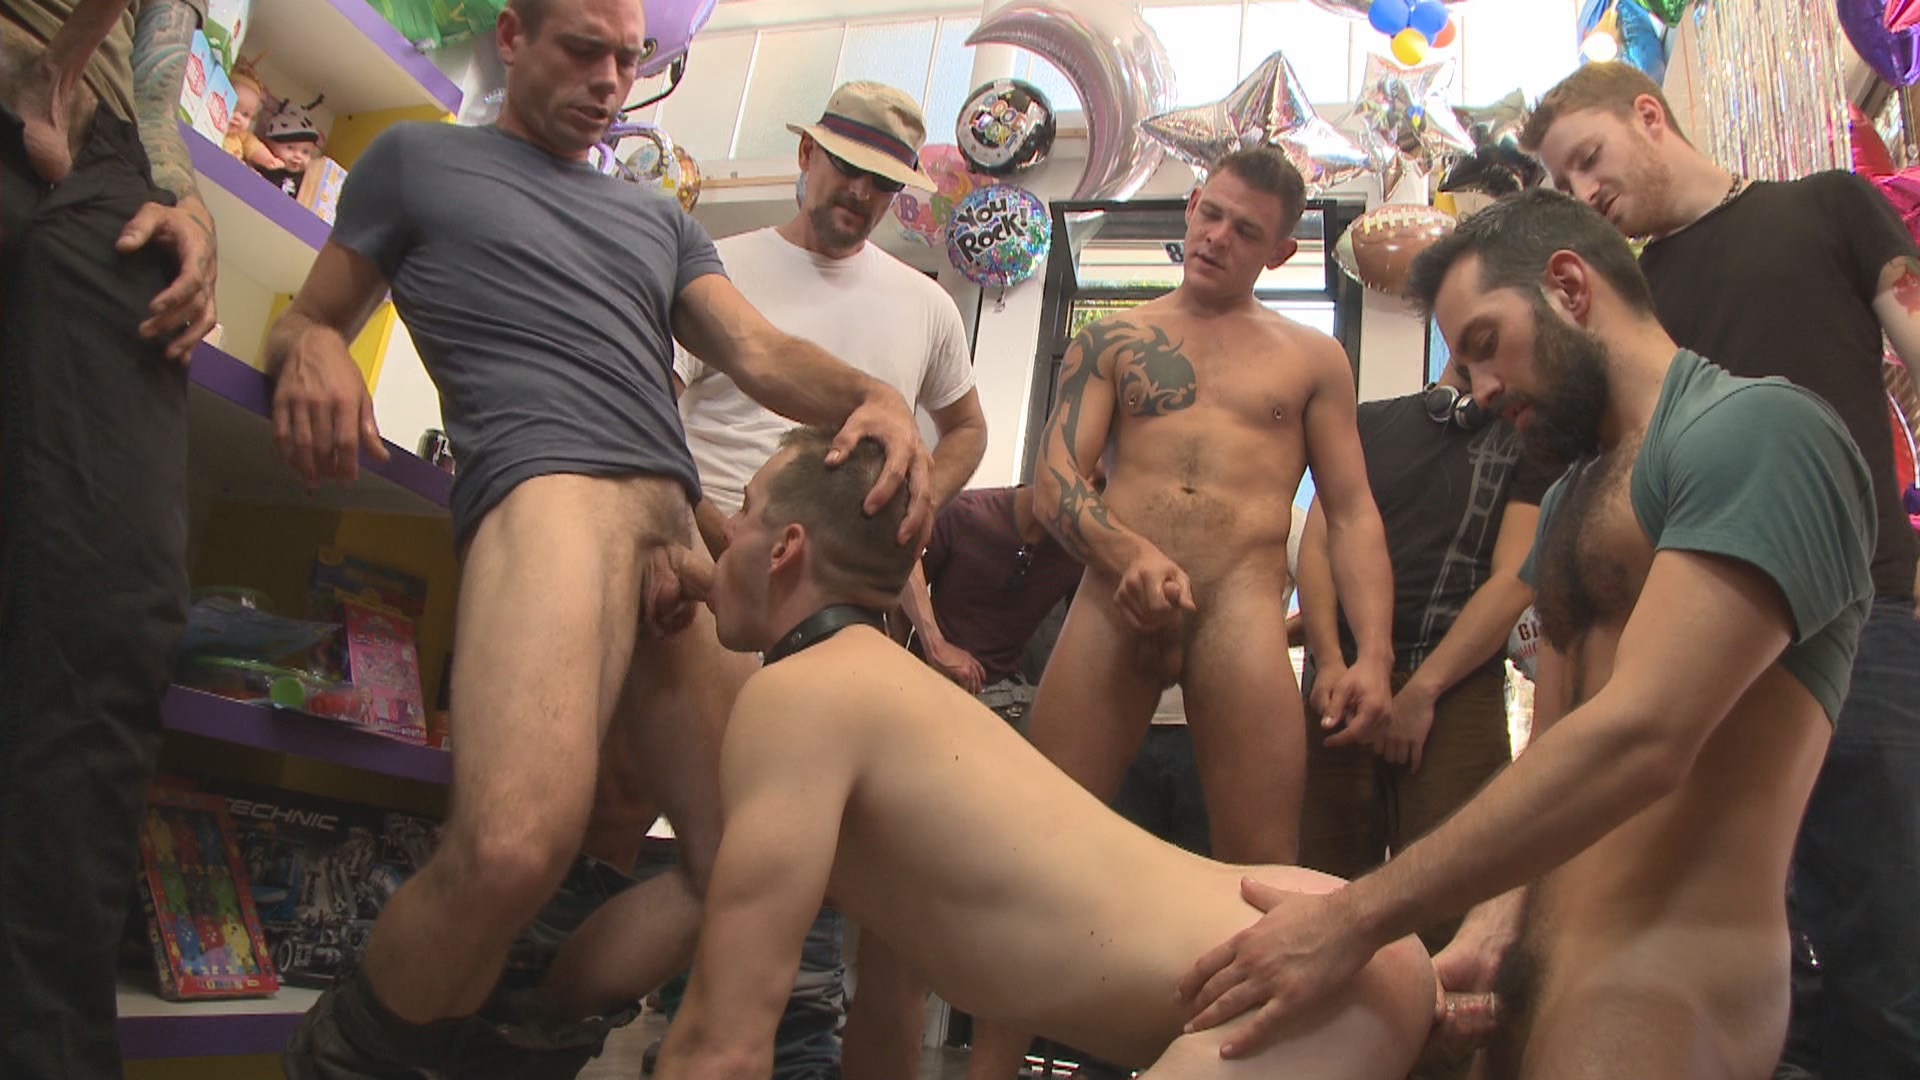 Bound In Public: The Balloon Shop Whore